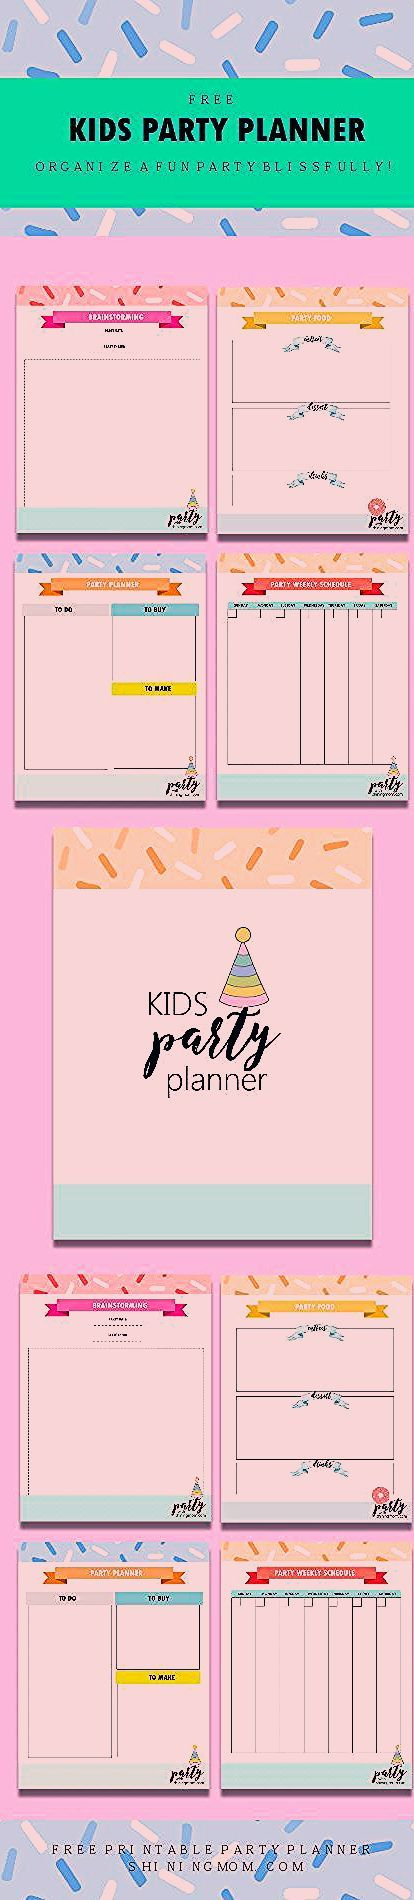 Photo of FREE Printable Kids Party Planner: Organize a Party Like a Pro!